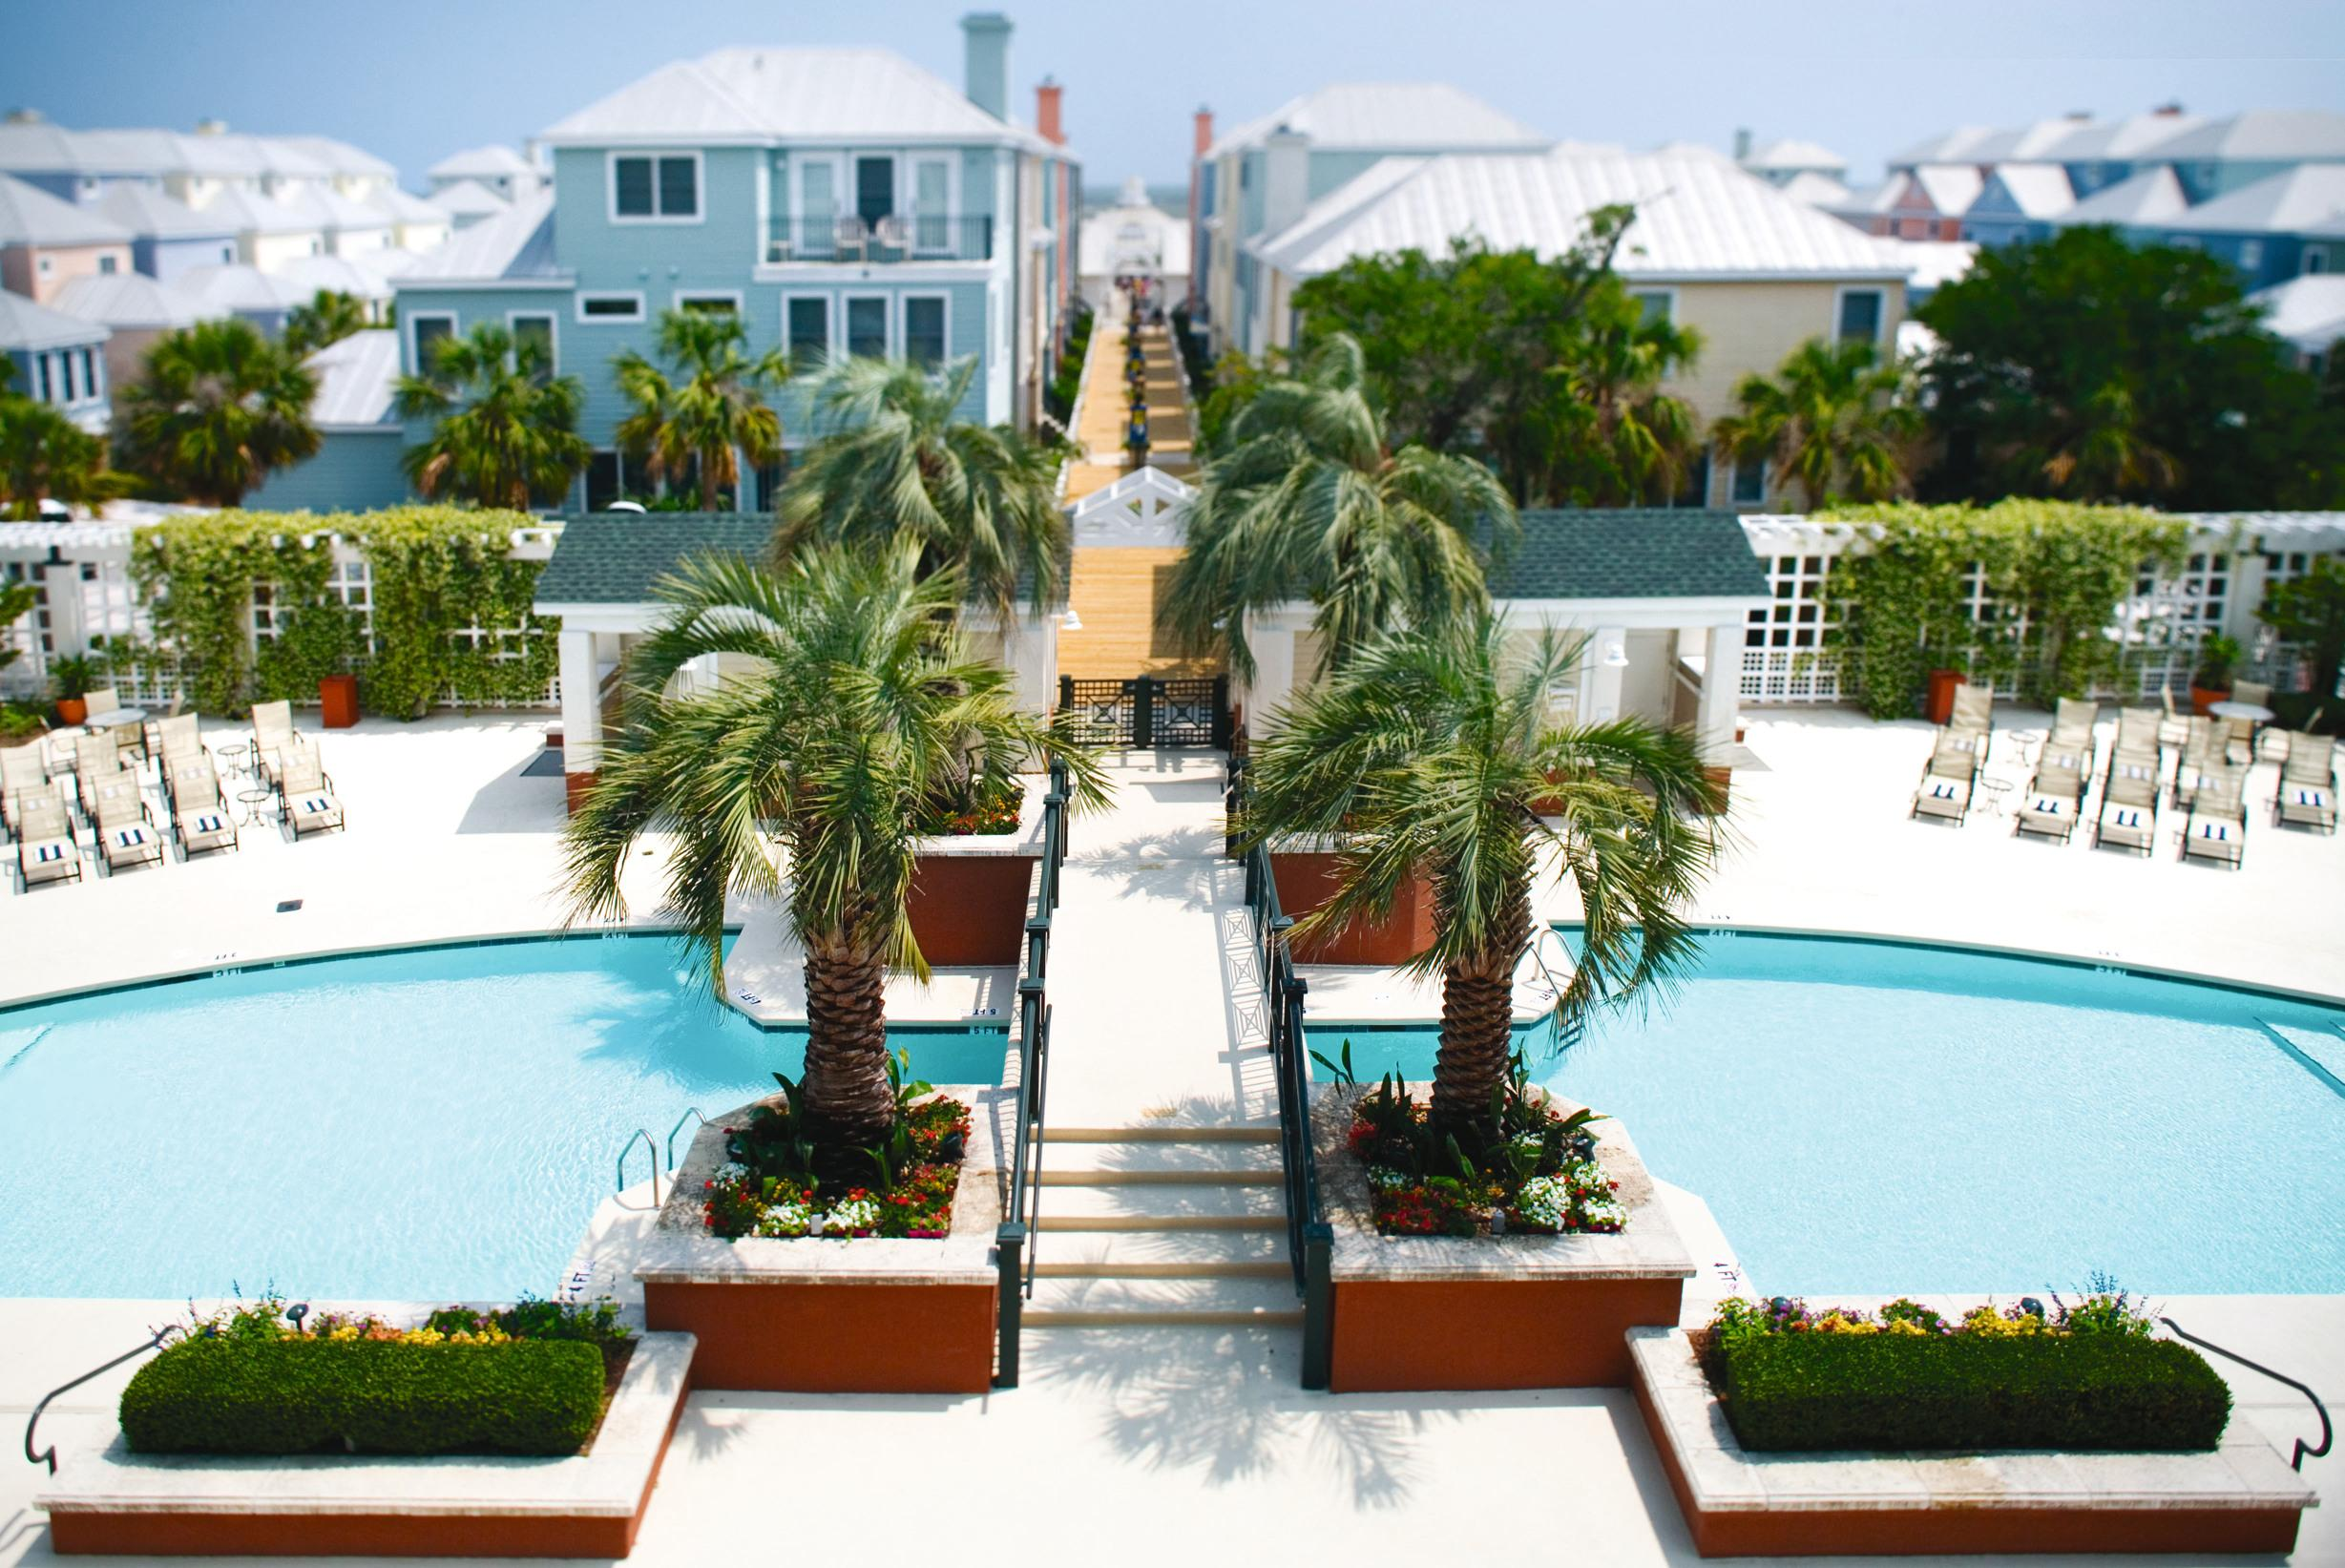 Adults-only pool at the Boardwalk Inn (Courtesy Wild Dunes)